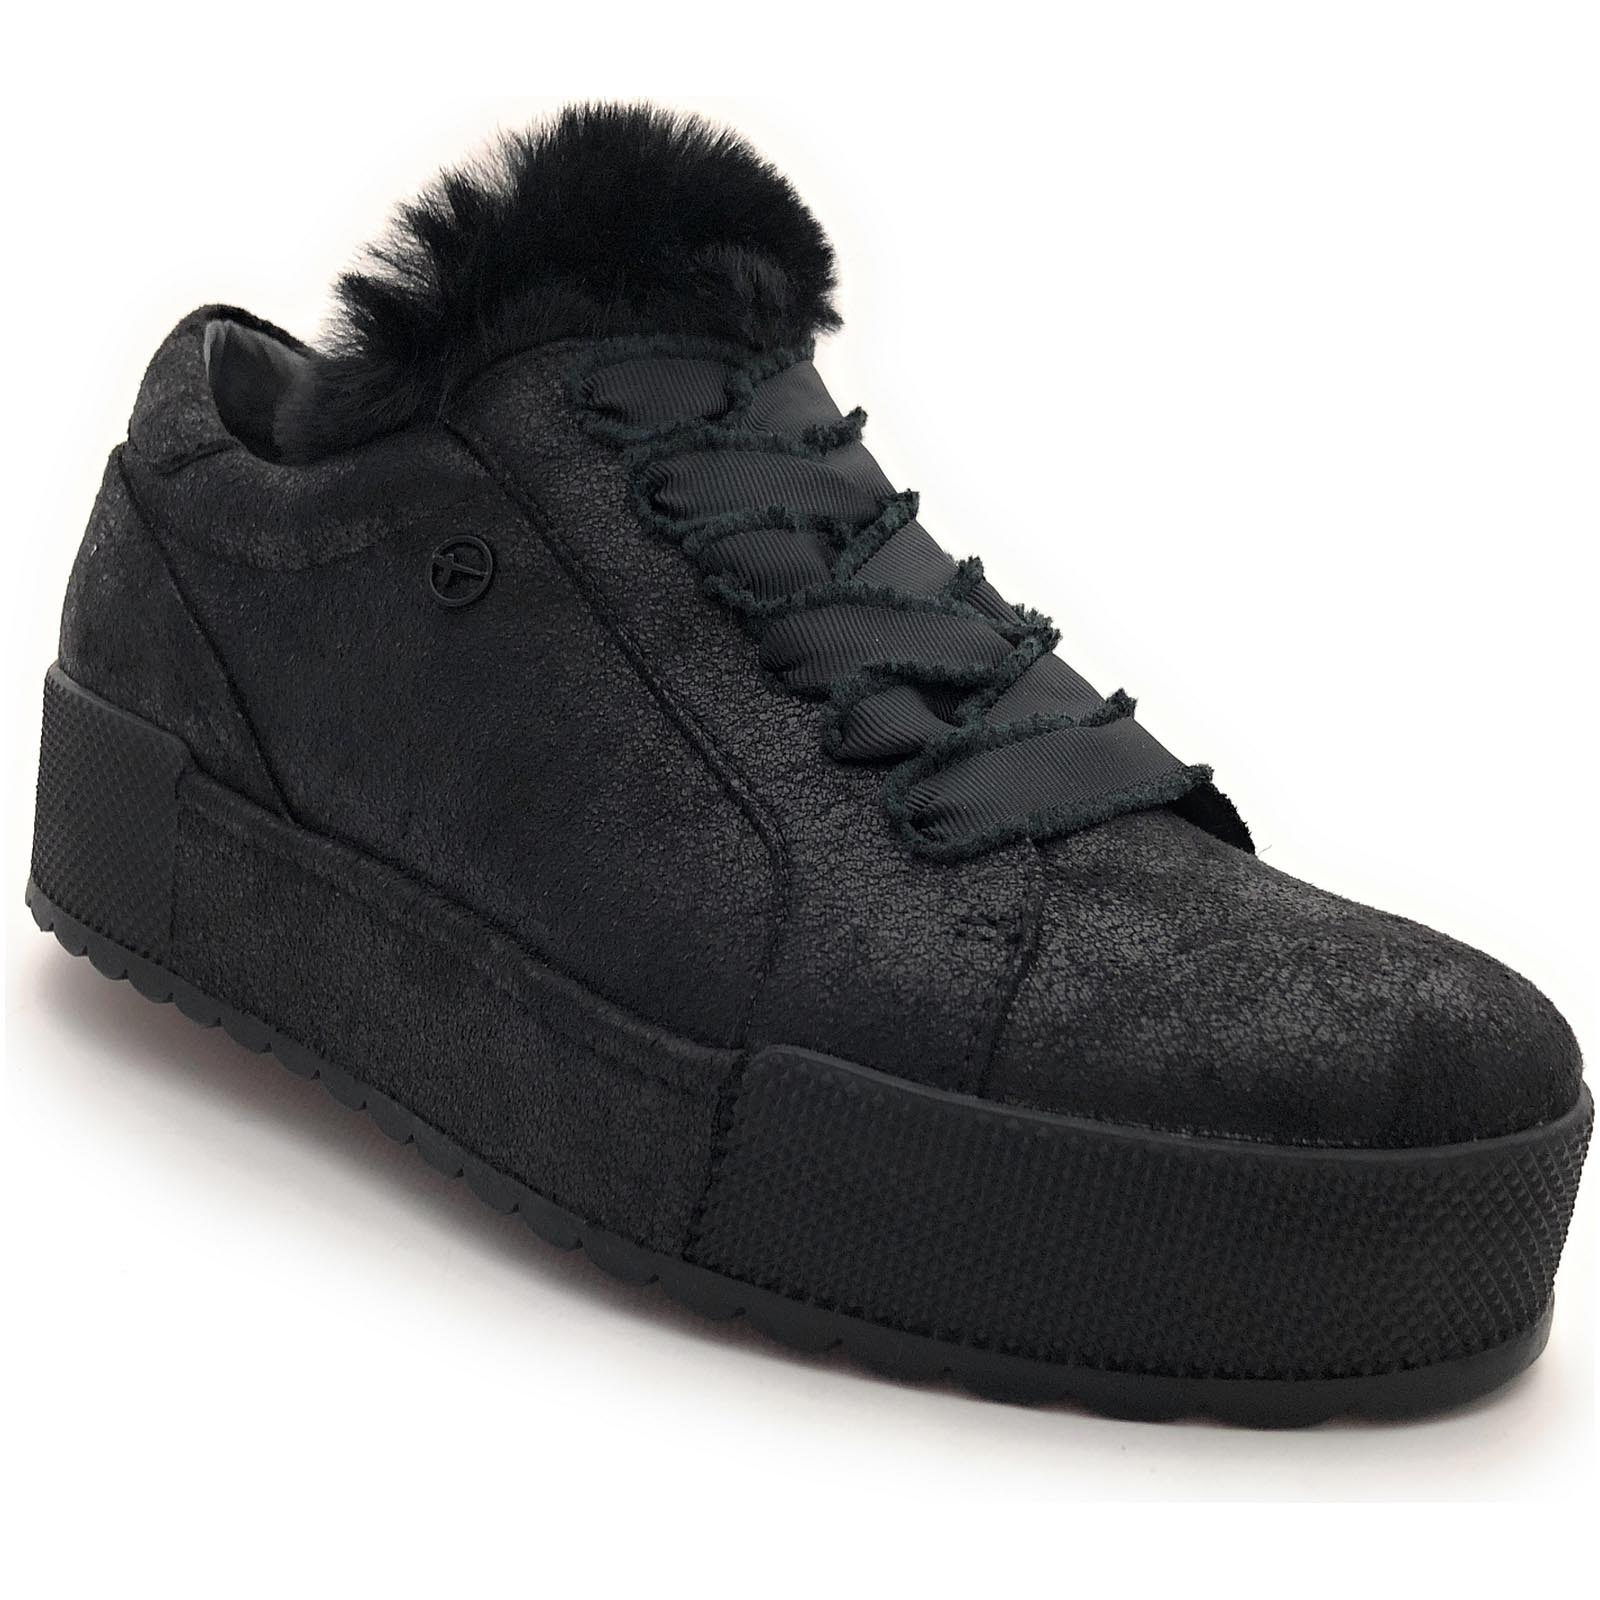 Tamaris baskets mode 23726.21 noir